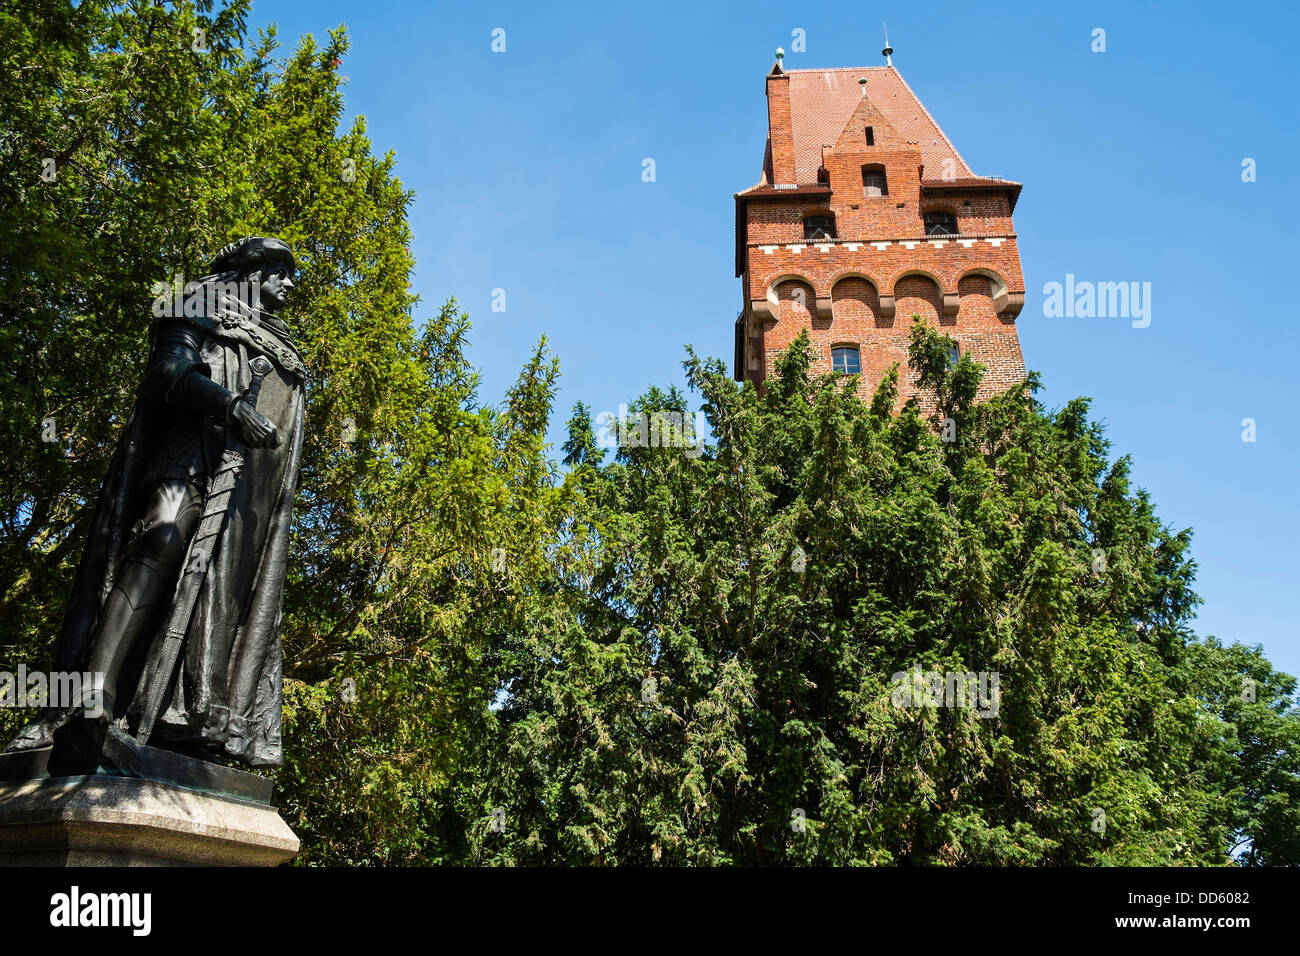 Statue Kurfürst Friedrich I. -  Tangermünde Castle, Saxony-Anhalt, Germany Stock Photo